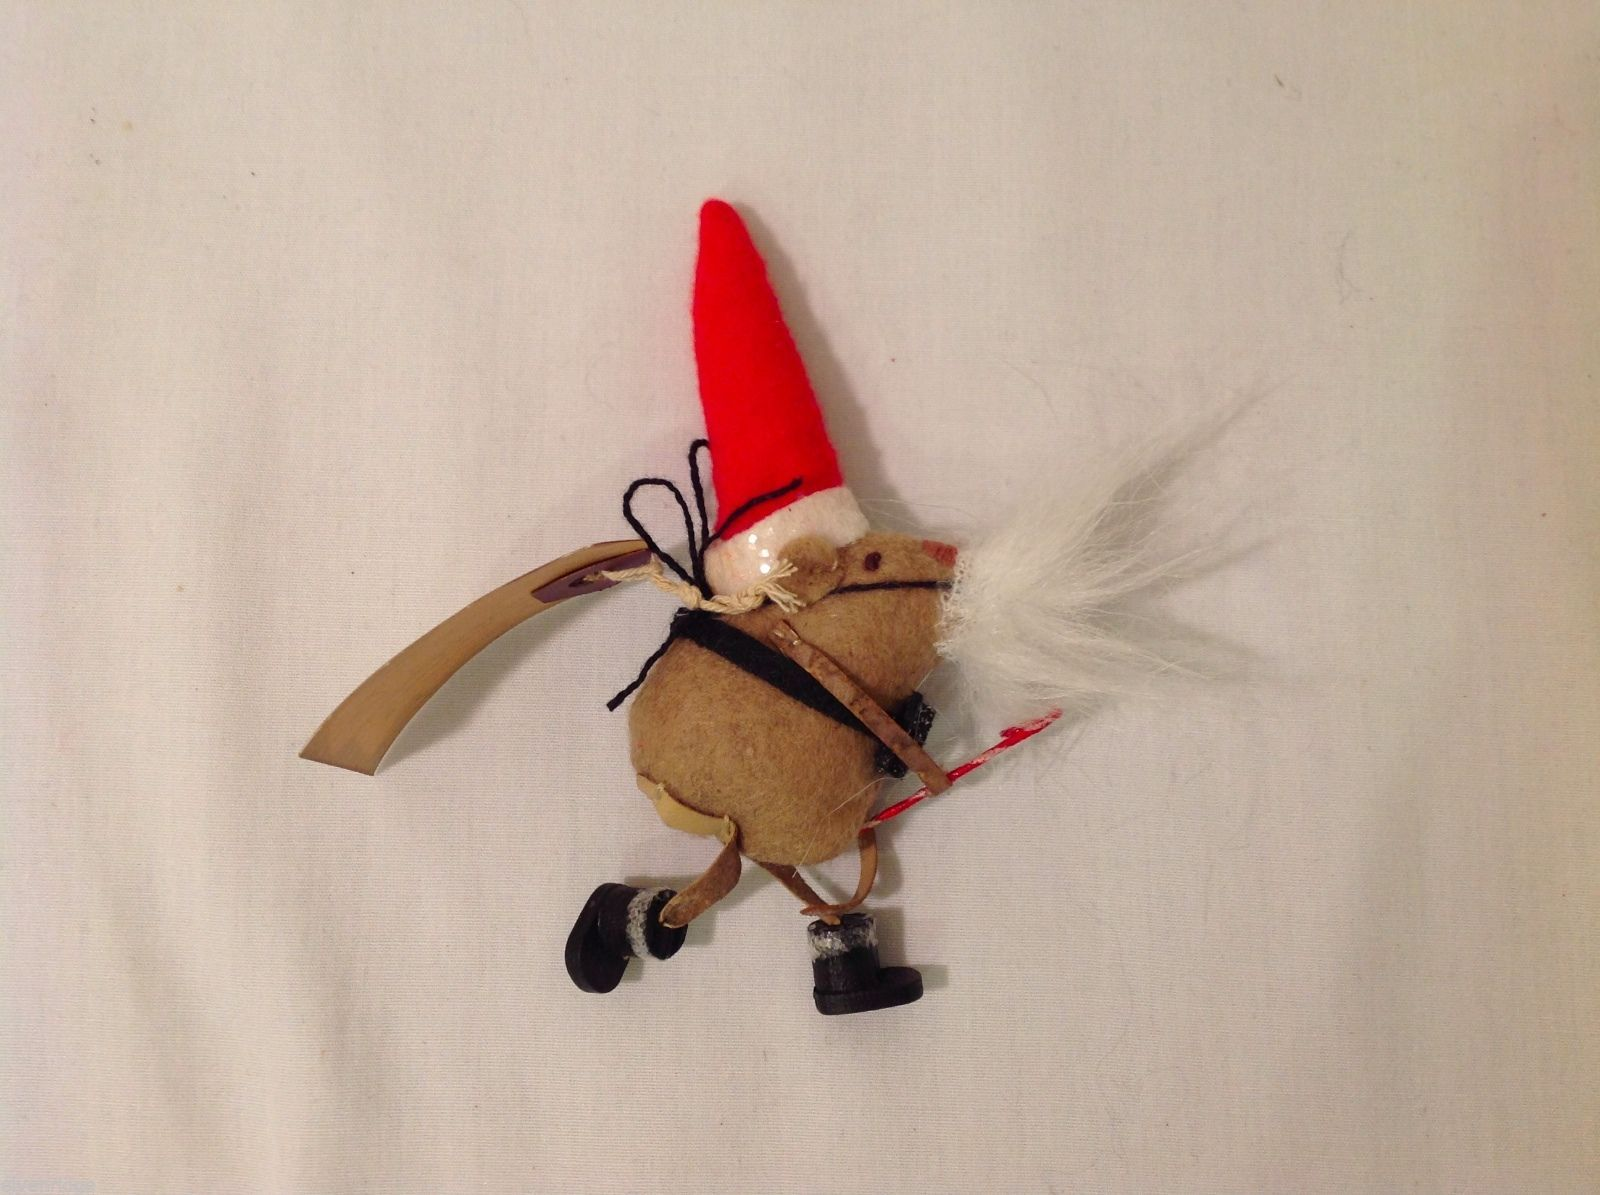 Vintage look Handmade Felt Mouse Ornament in Santa's Beard and Hat w/Candy cane